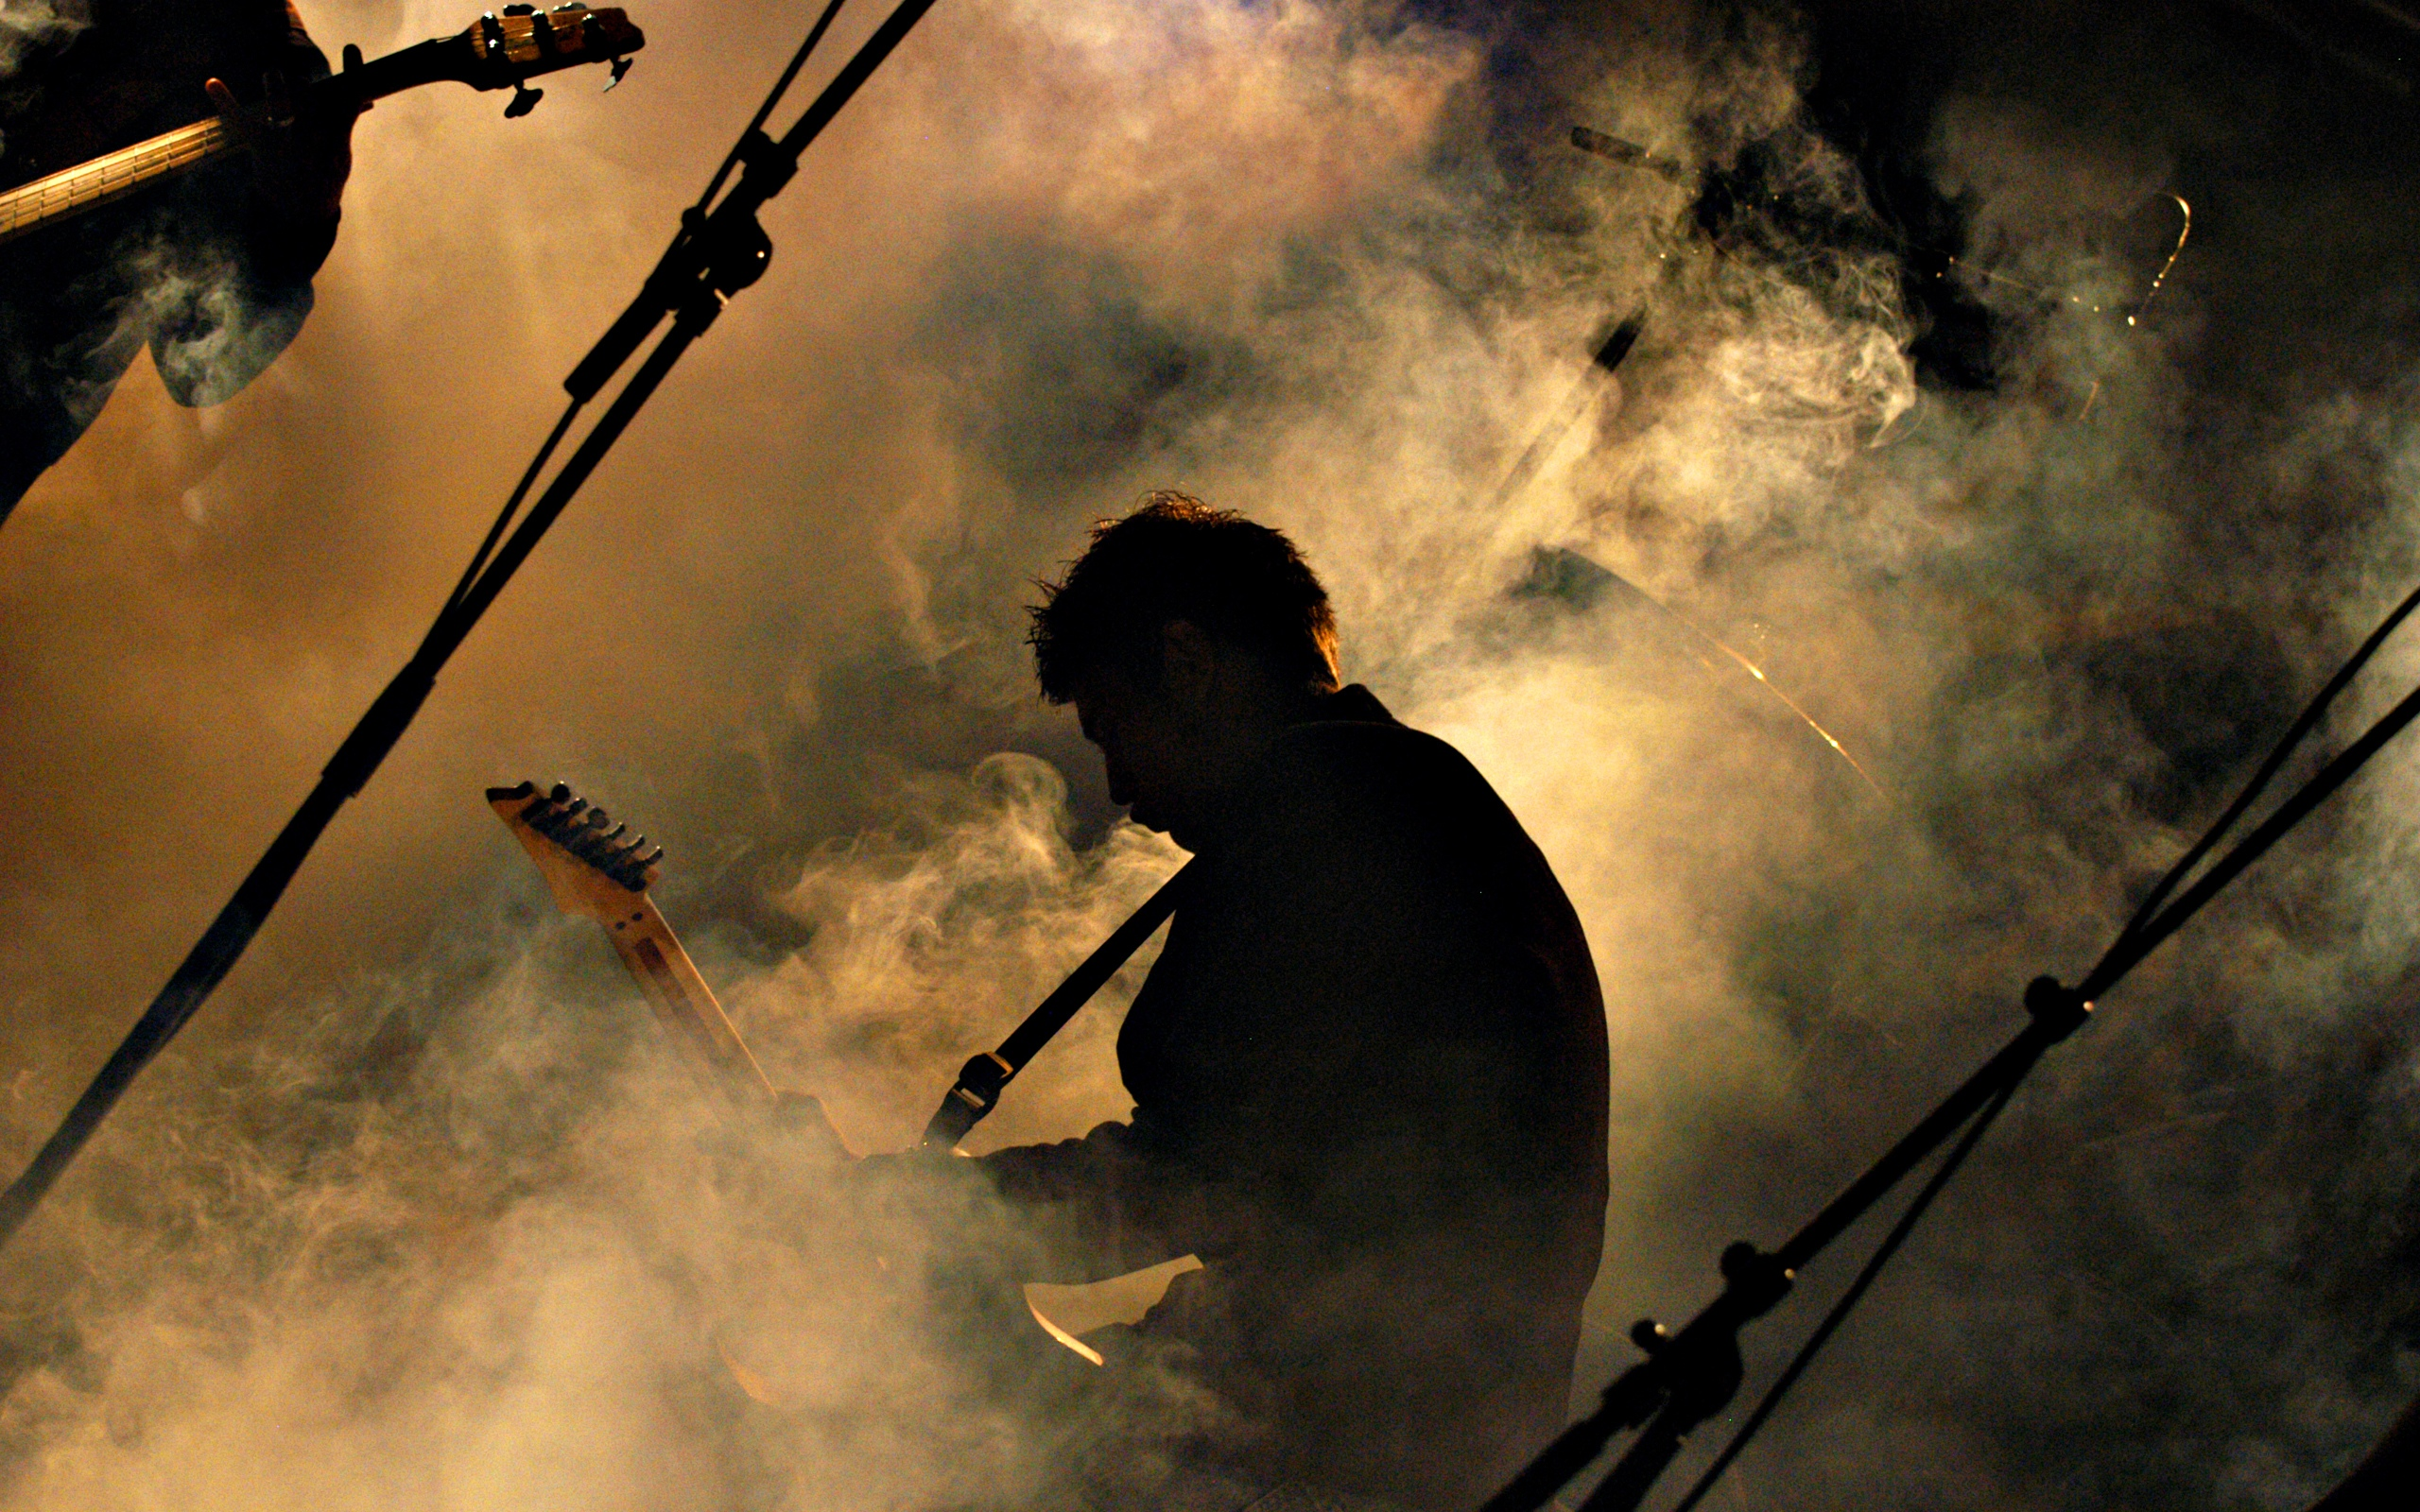 Rock Concert wallpapers and images   wallpapers pictures photos 2560x1600